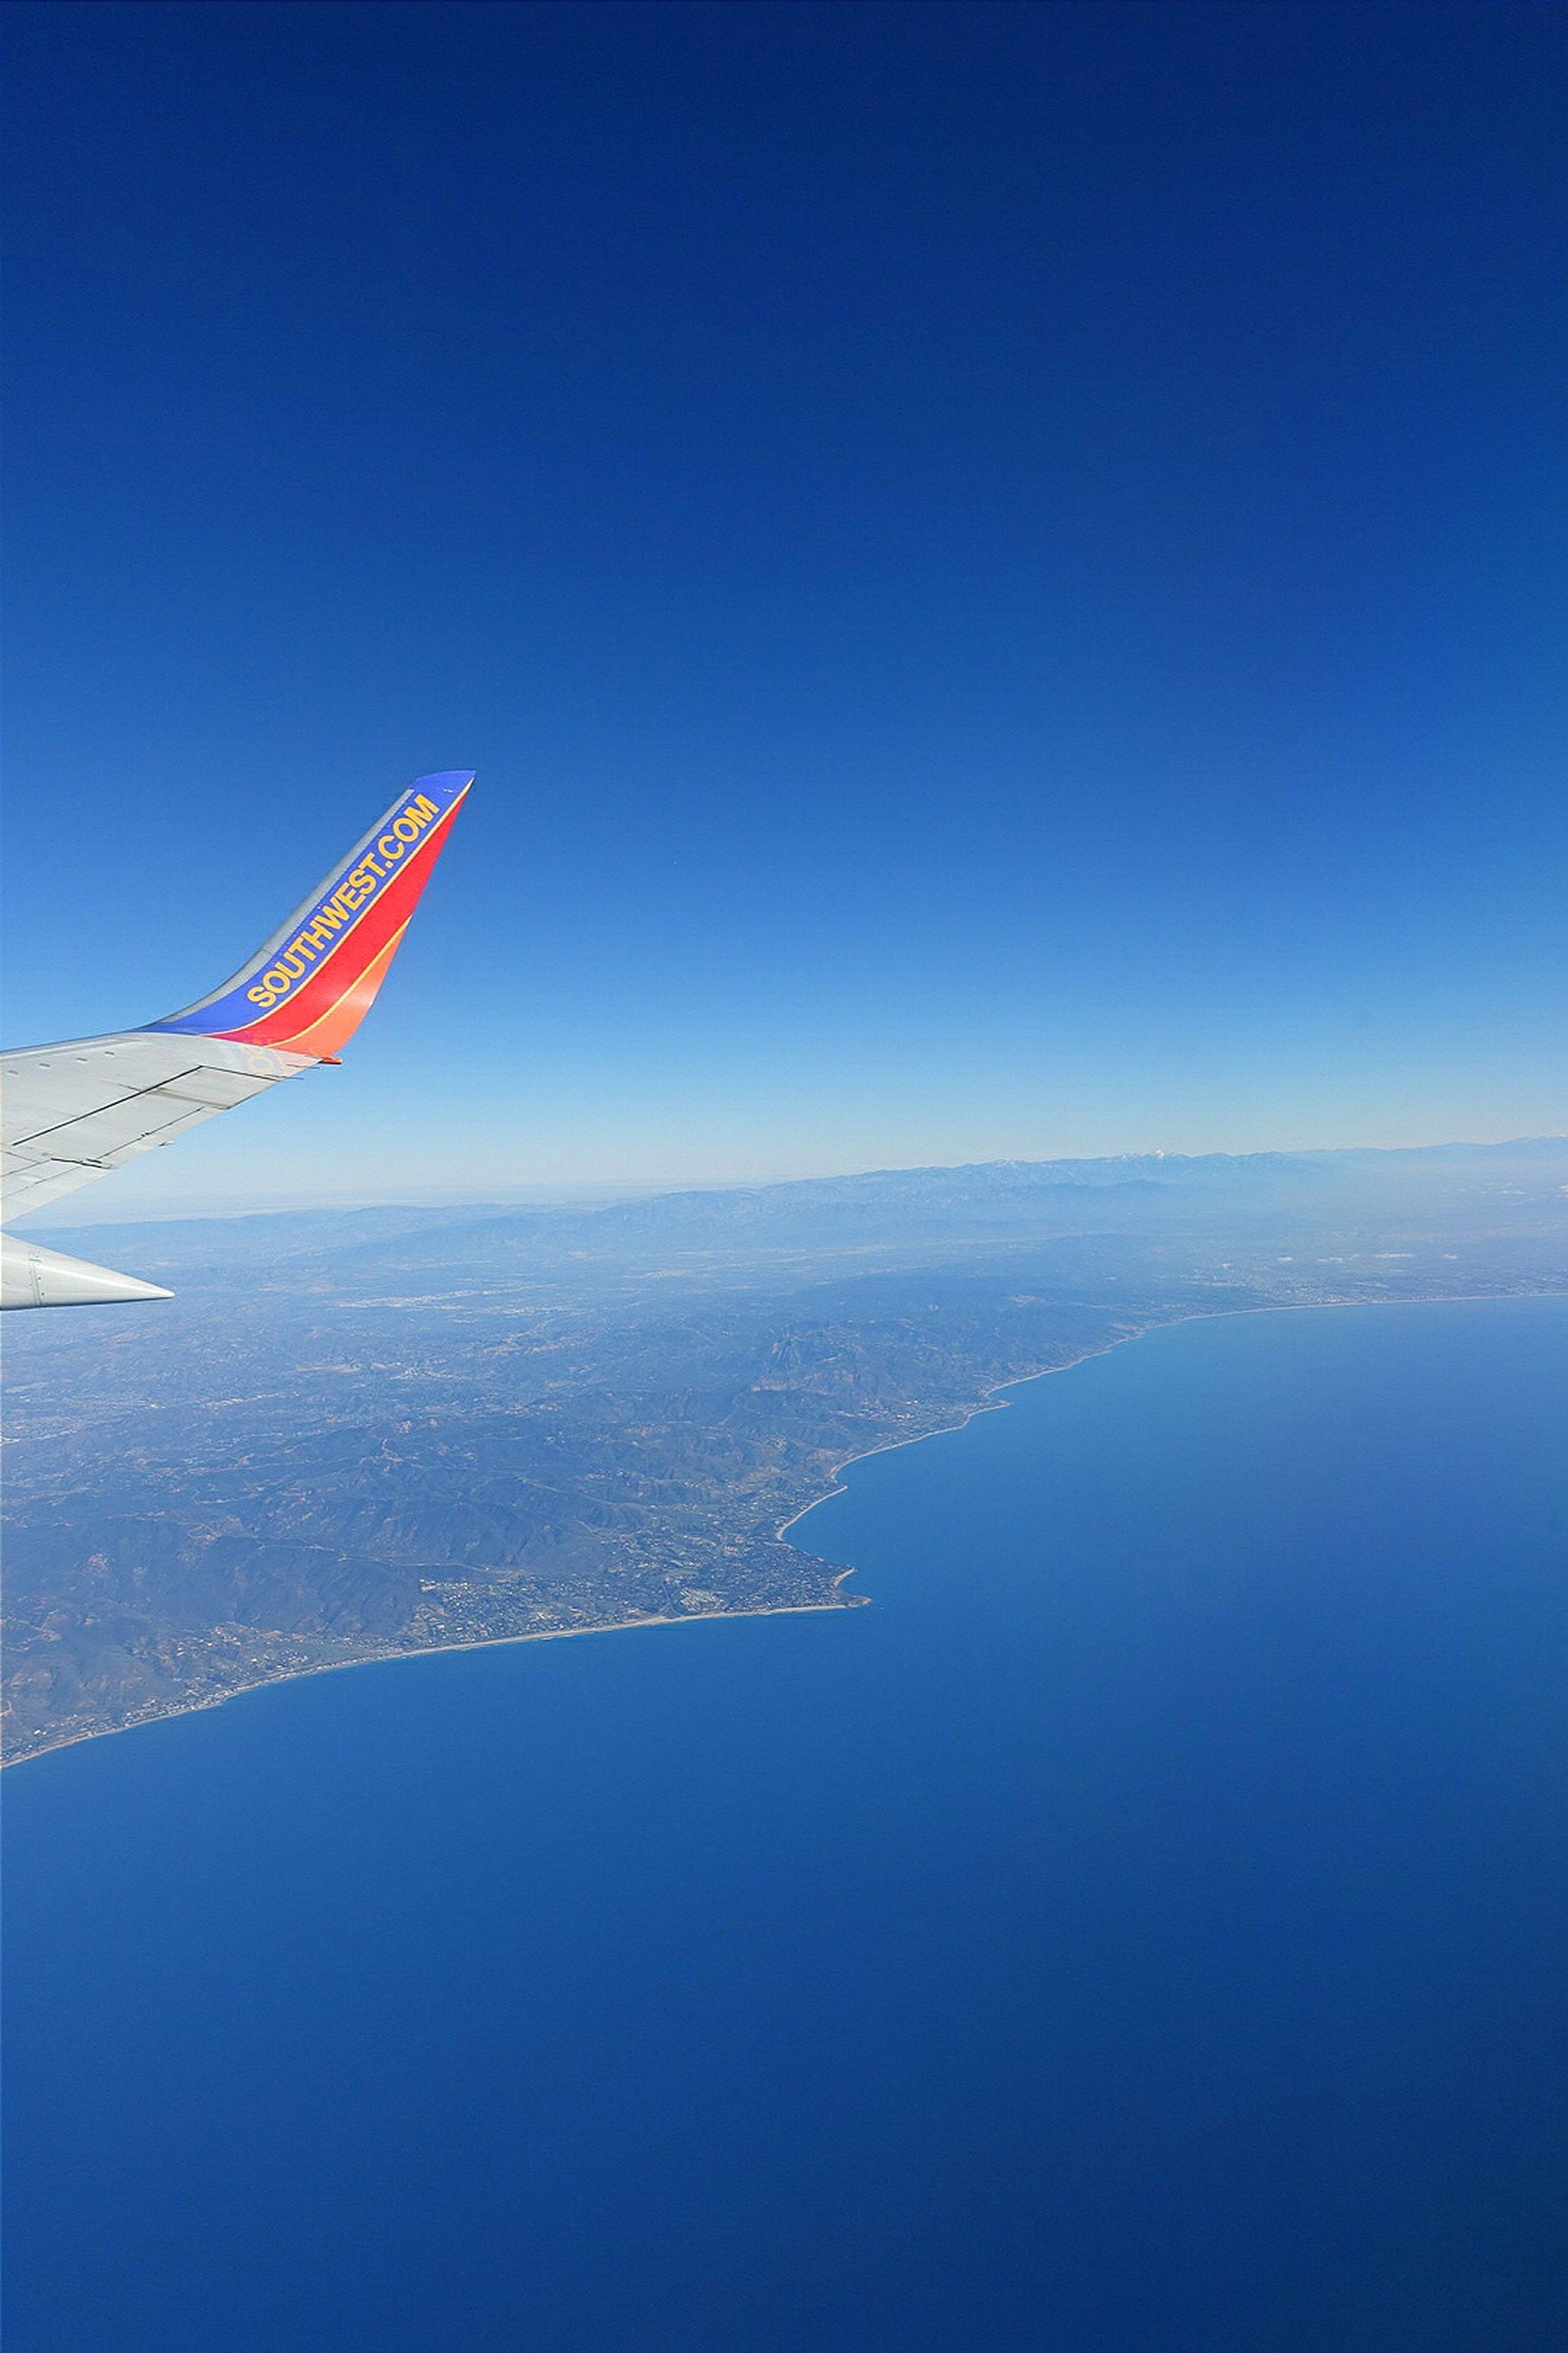 blue, clear sky, copy space, flying, sea, water, aerial view, mid-air, nature, transportation, waterfront, scenics, beauty in nature, travel, air vehicle, outdoors, cityscape, mode of transport, day, no people